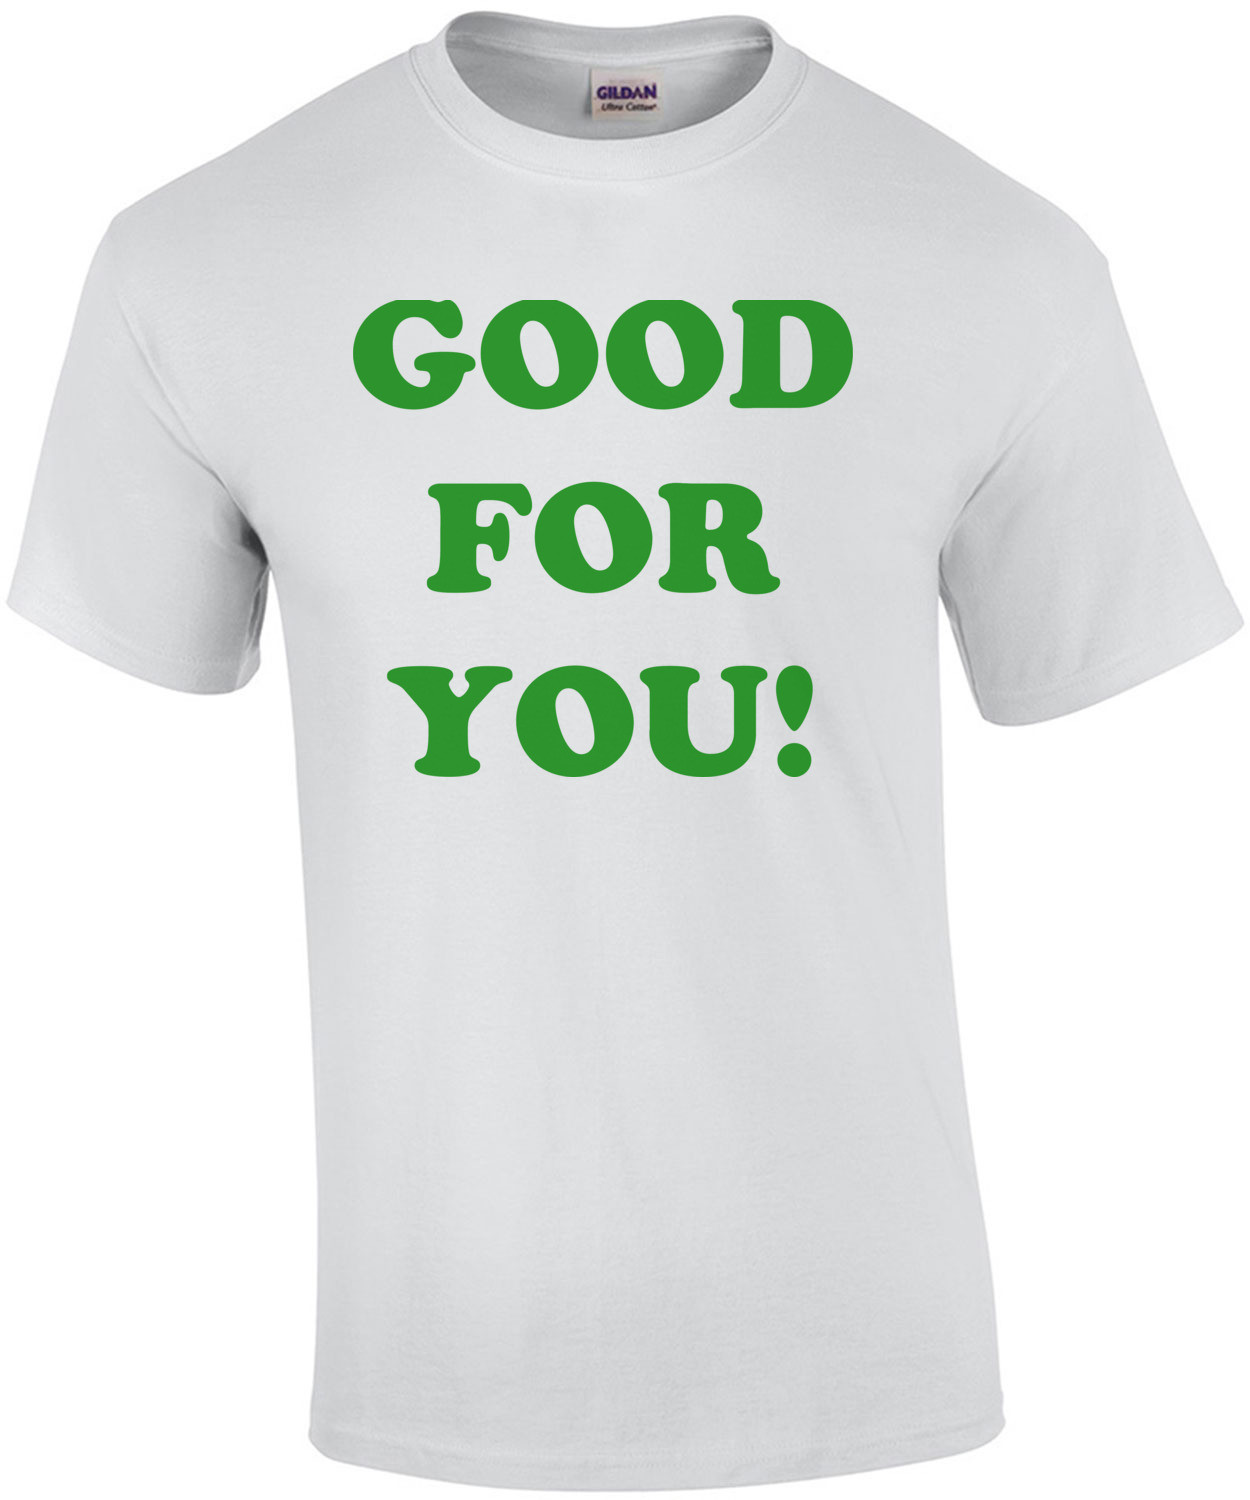 GOOD FOR YOU! Shirt